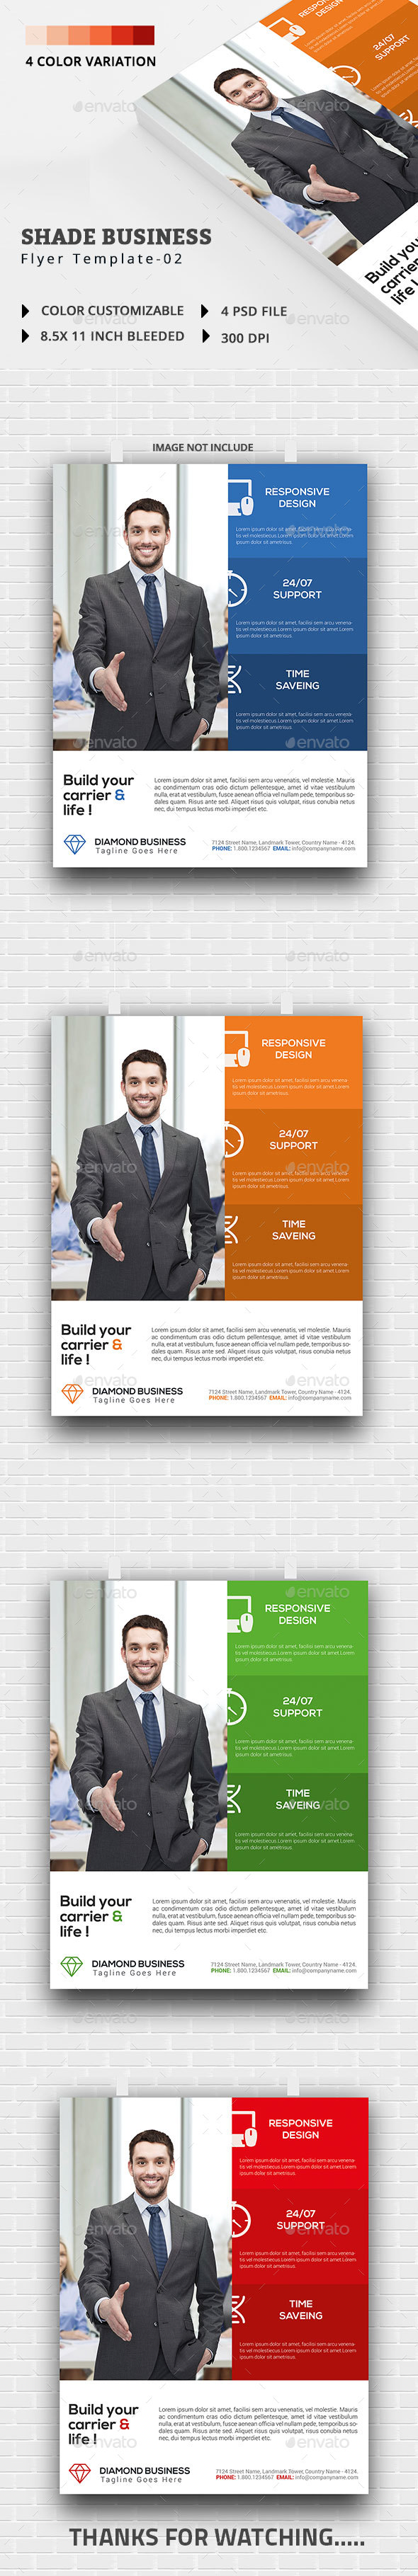 Shade Business Flyer Template-02 - Flyers Print Templates